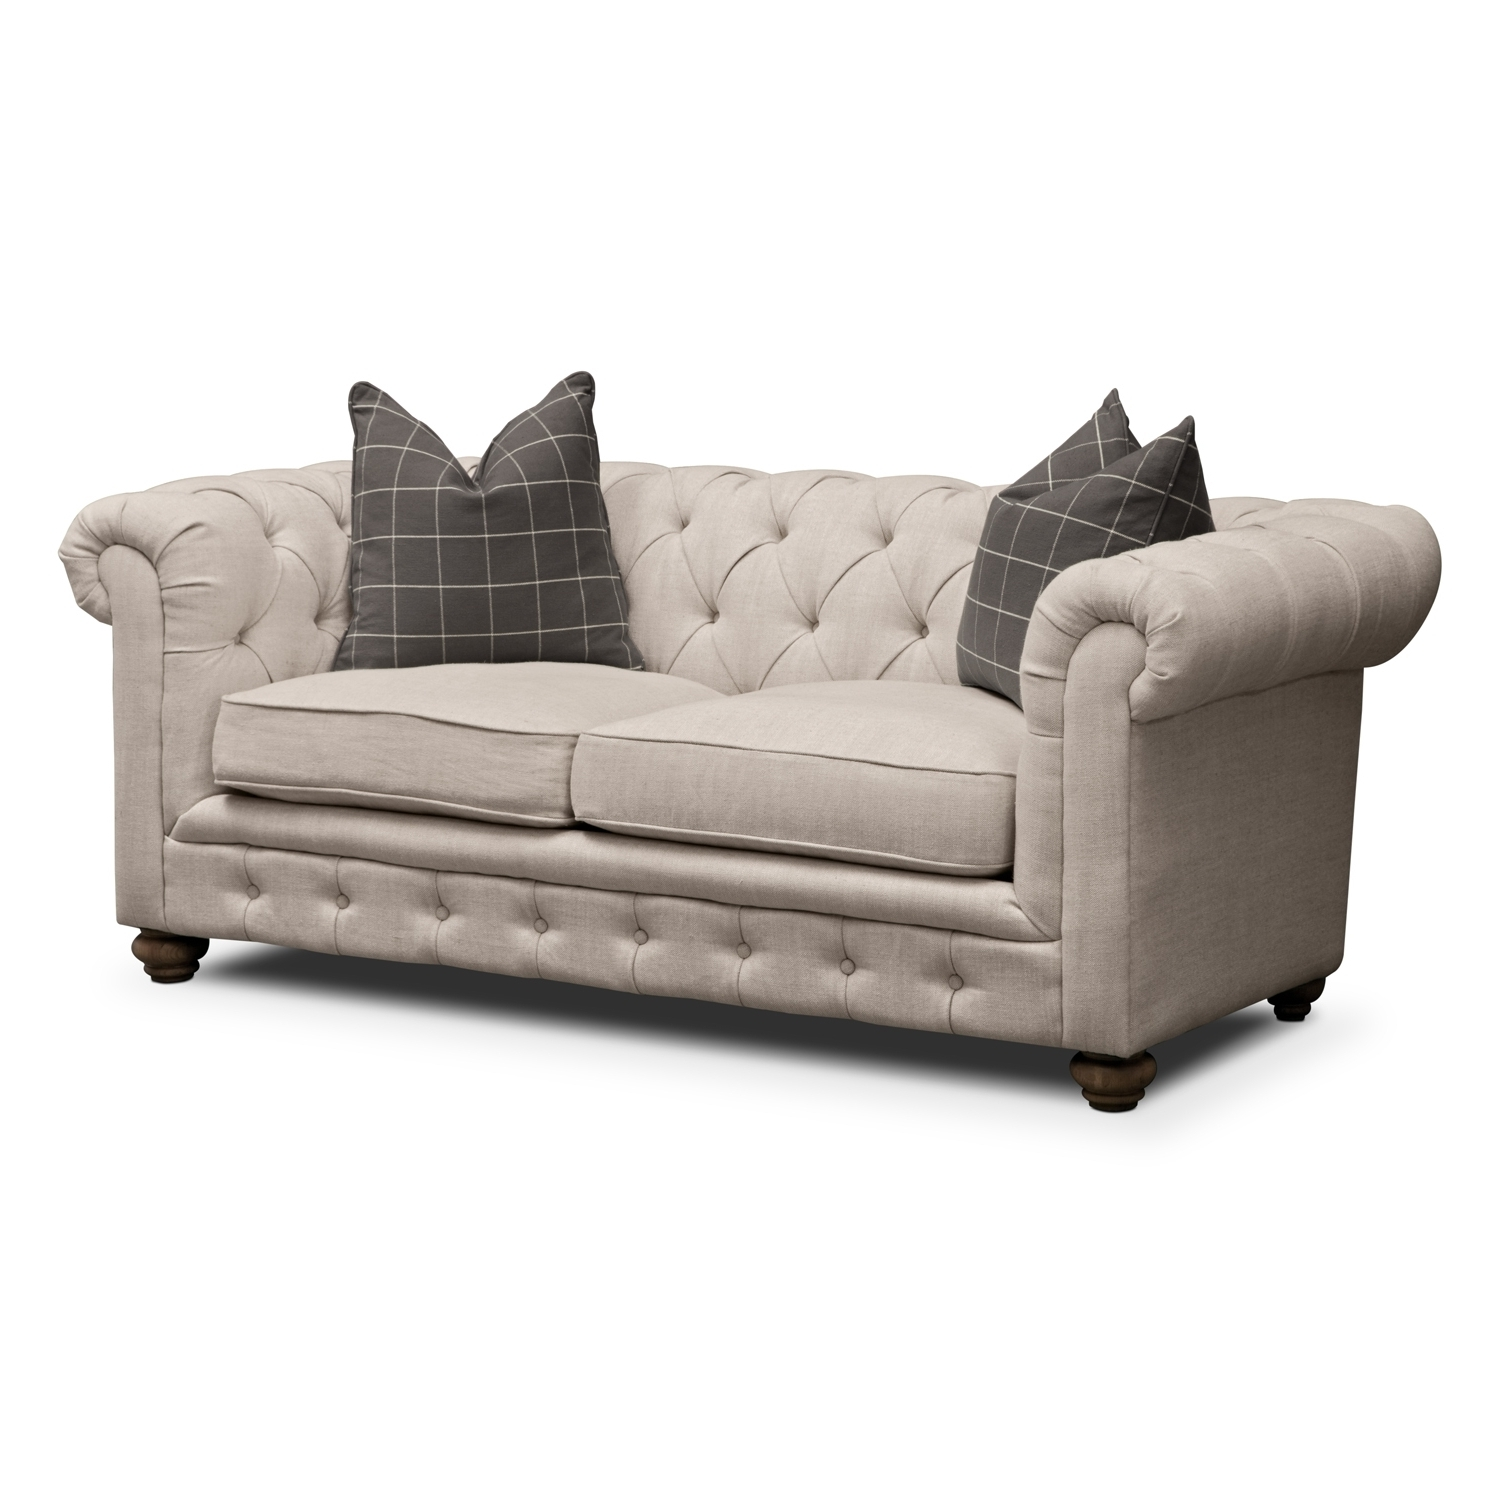 Great Apartment Size Sofas 20 On Modern Sofa Ideas With Apartment Throughout Current Apartment Size Sofas (View 8 of 20)